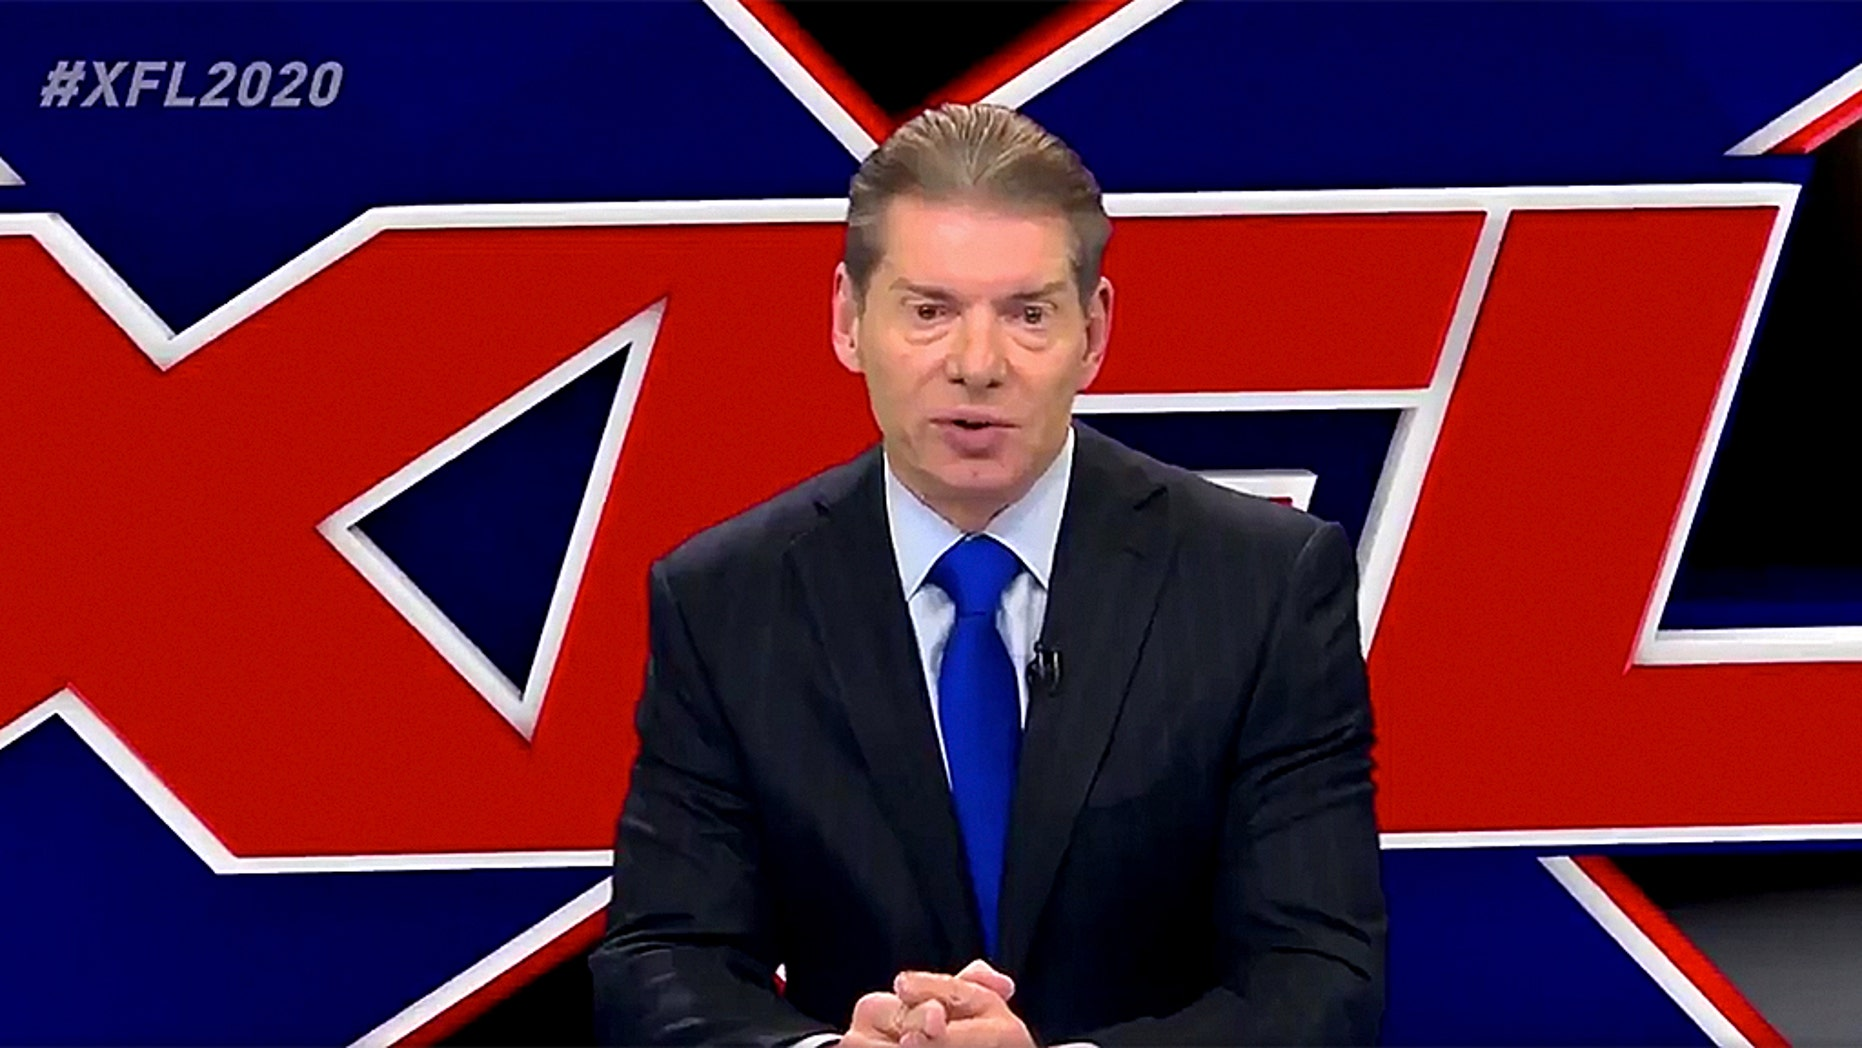 The Vince McMahon-led XFL is set to announce its cities and venues Wednesday.